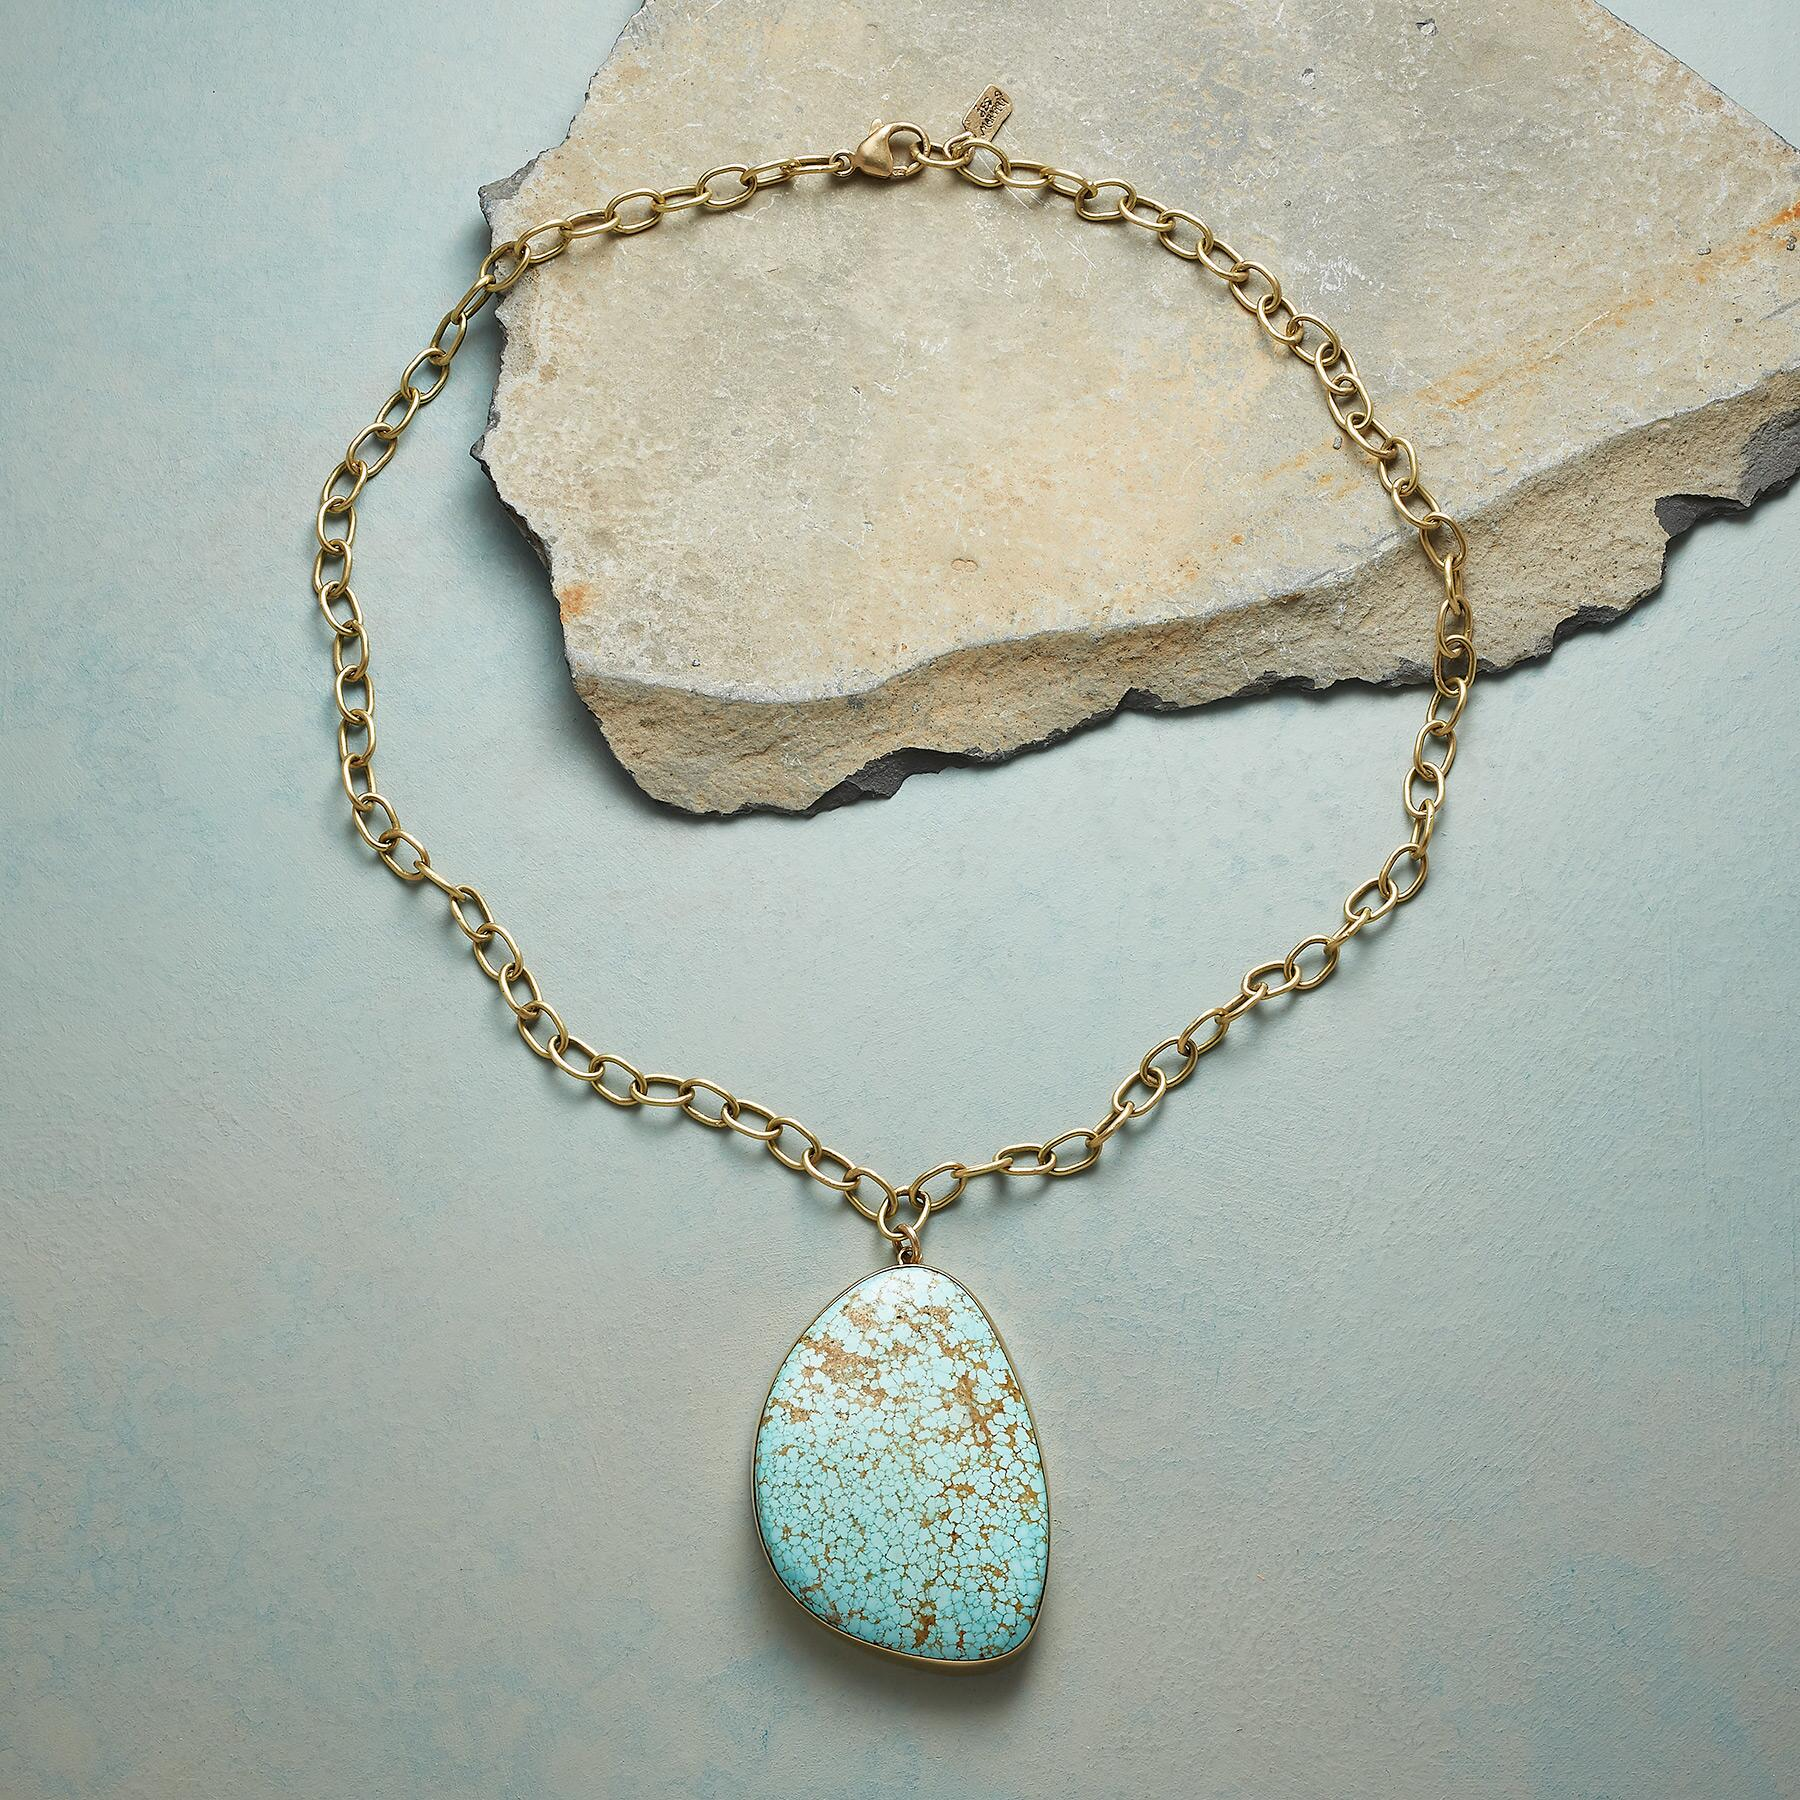 LIMITED EDITION EARTH'S TREASURES NECKLACE: View 2